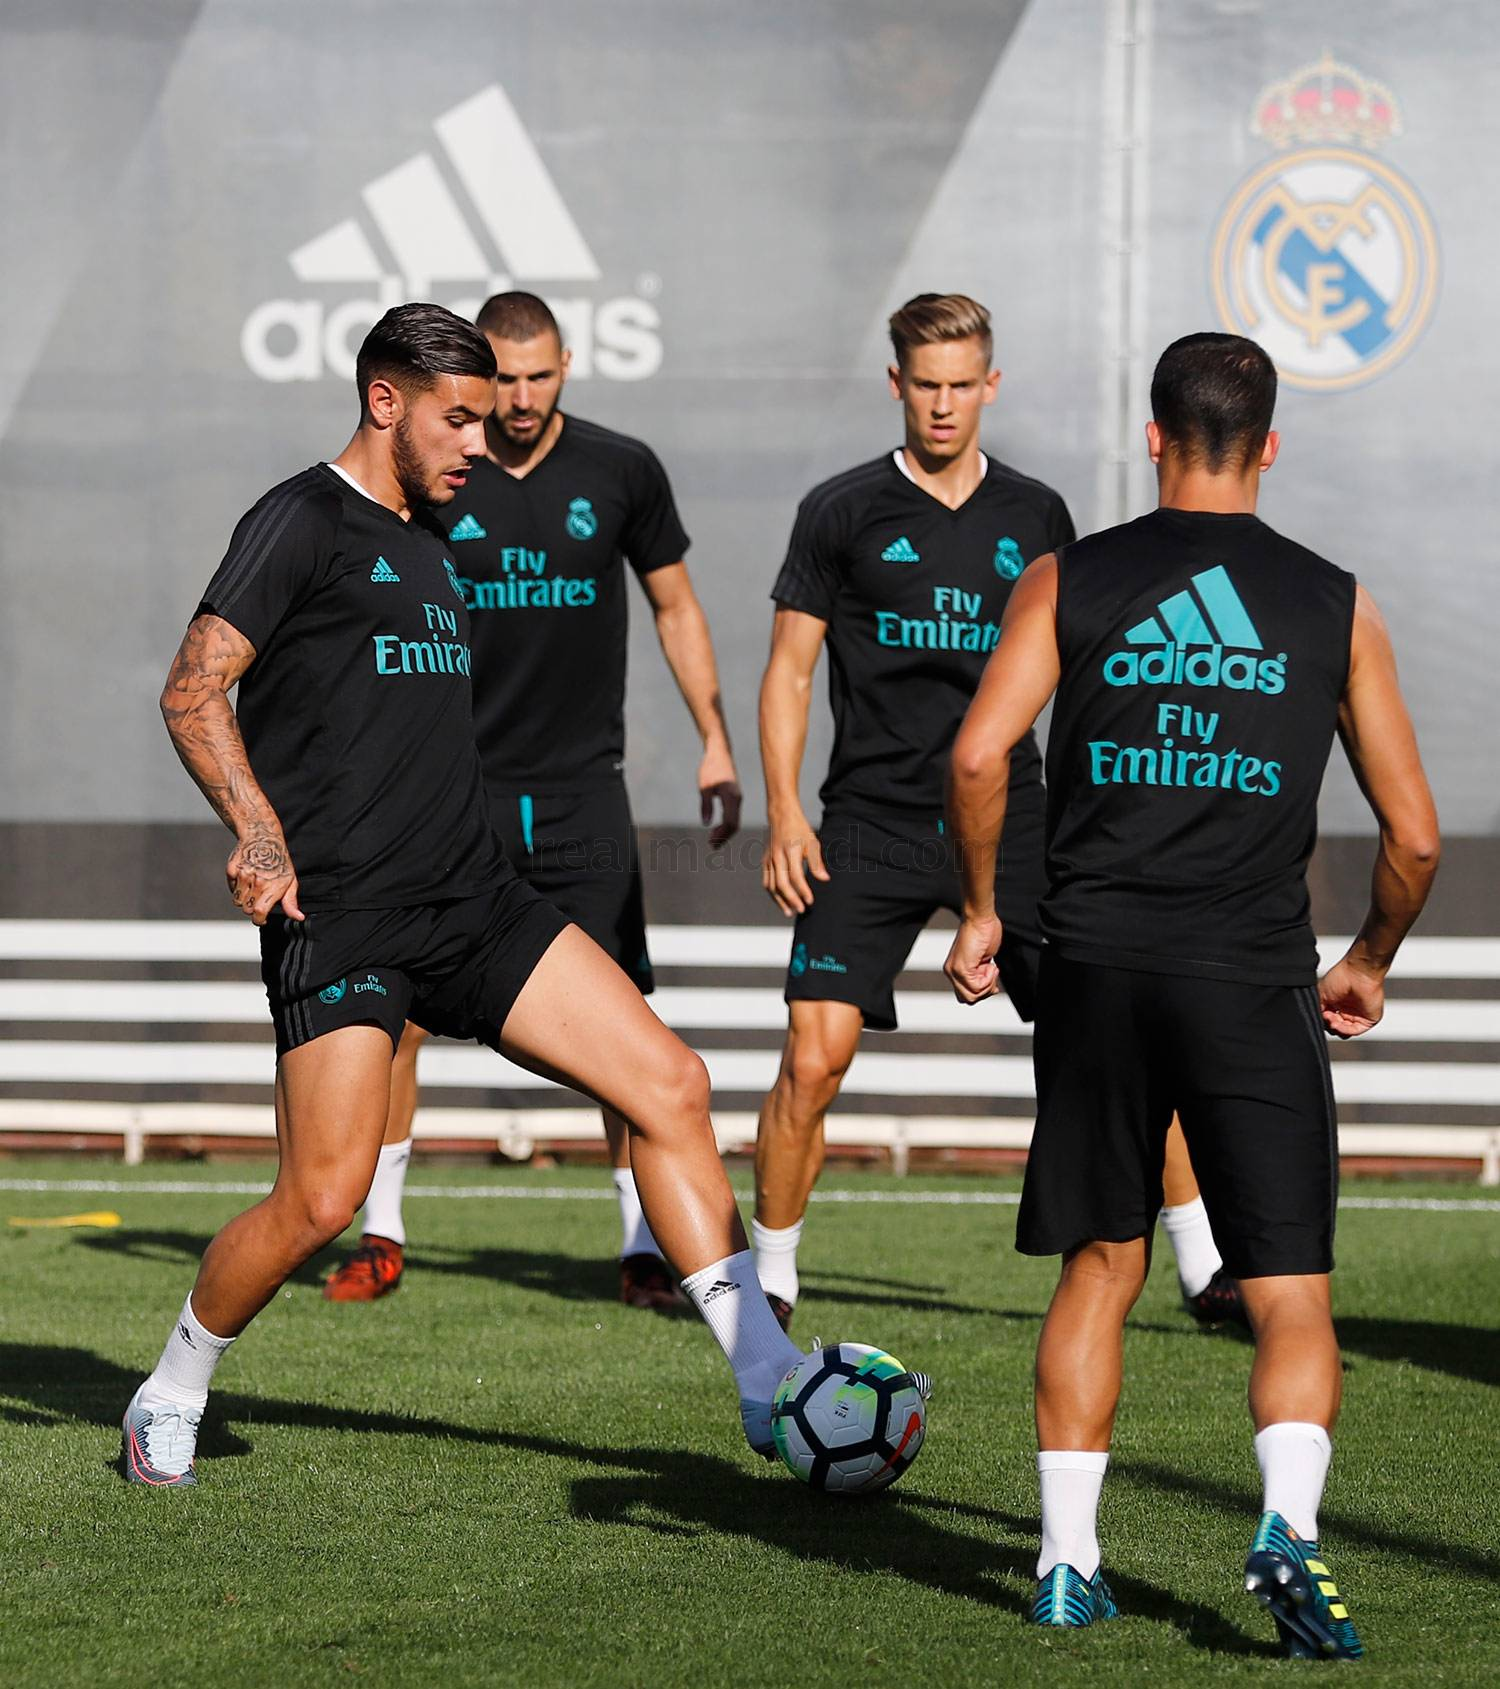 Real Madrid - Entrenamiento del Real Madrid - 04-10-2017